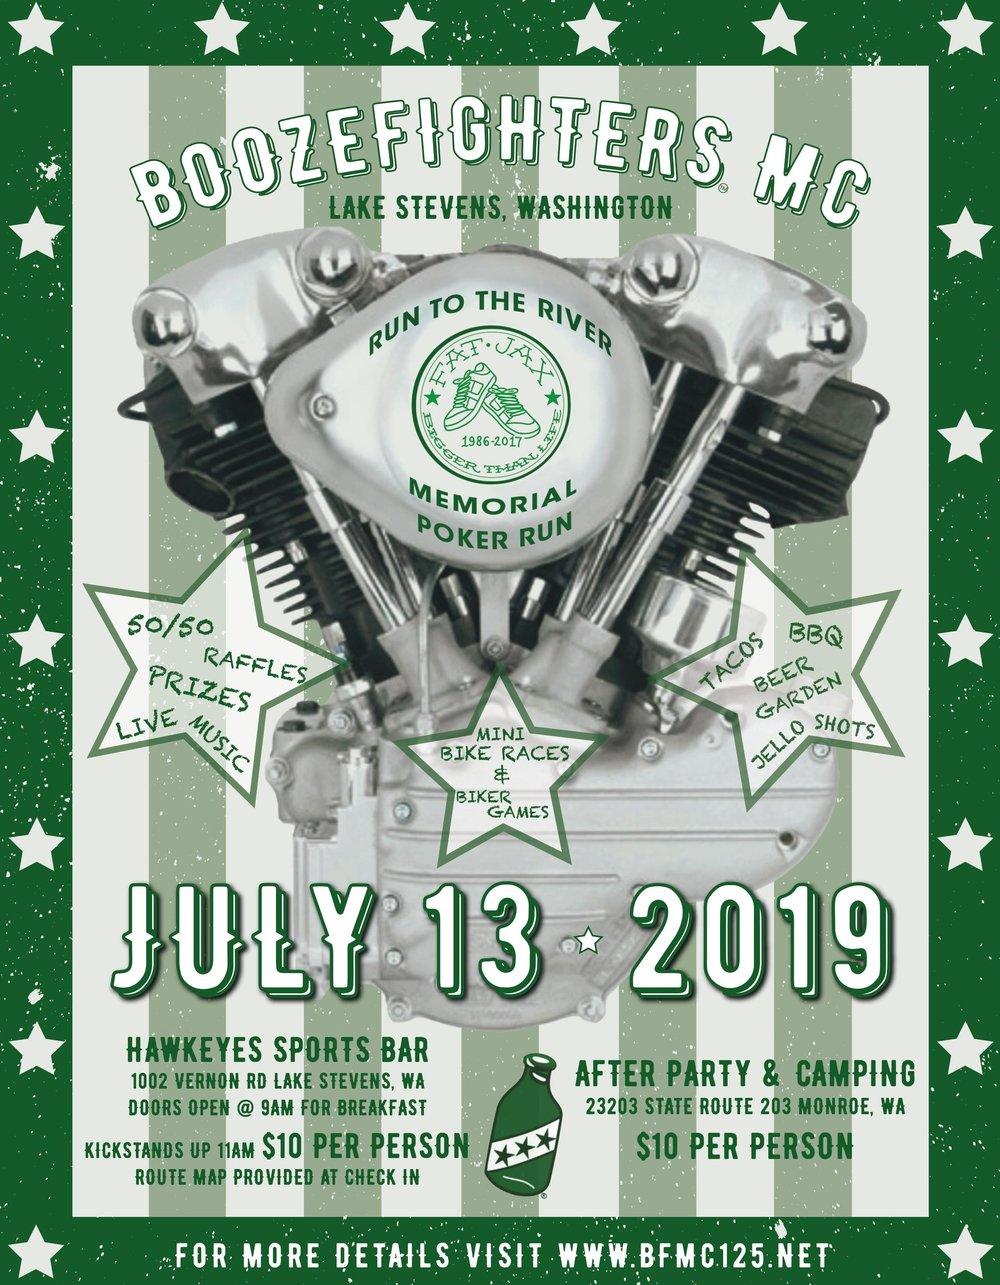 Memorial Poker Run  Meet Up 9:00am Breakfast and Sign Up for poker run  At  Hawkeyes Sports Bar   1002 Vernon Rd Lake Stevens WA  Kick Stands up at 11:00 AM  Route provided during registration  Stops and Sponsors:   Stewarts    Triplehorn Brewery    Pete's Club Grill     Run to the River Camp out  Party will begin after Memorial Run roughly 4:00 PM  23203 State Route 203 Monroe WA  $10 Camping Donation upon entry  Party with the Original Wild Ones  Motorcycle Games  Drinks  50/50 Raffle  Raffles  Live Music Provided By :  Prowler NW   Good Times